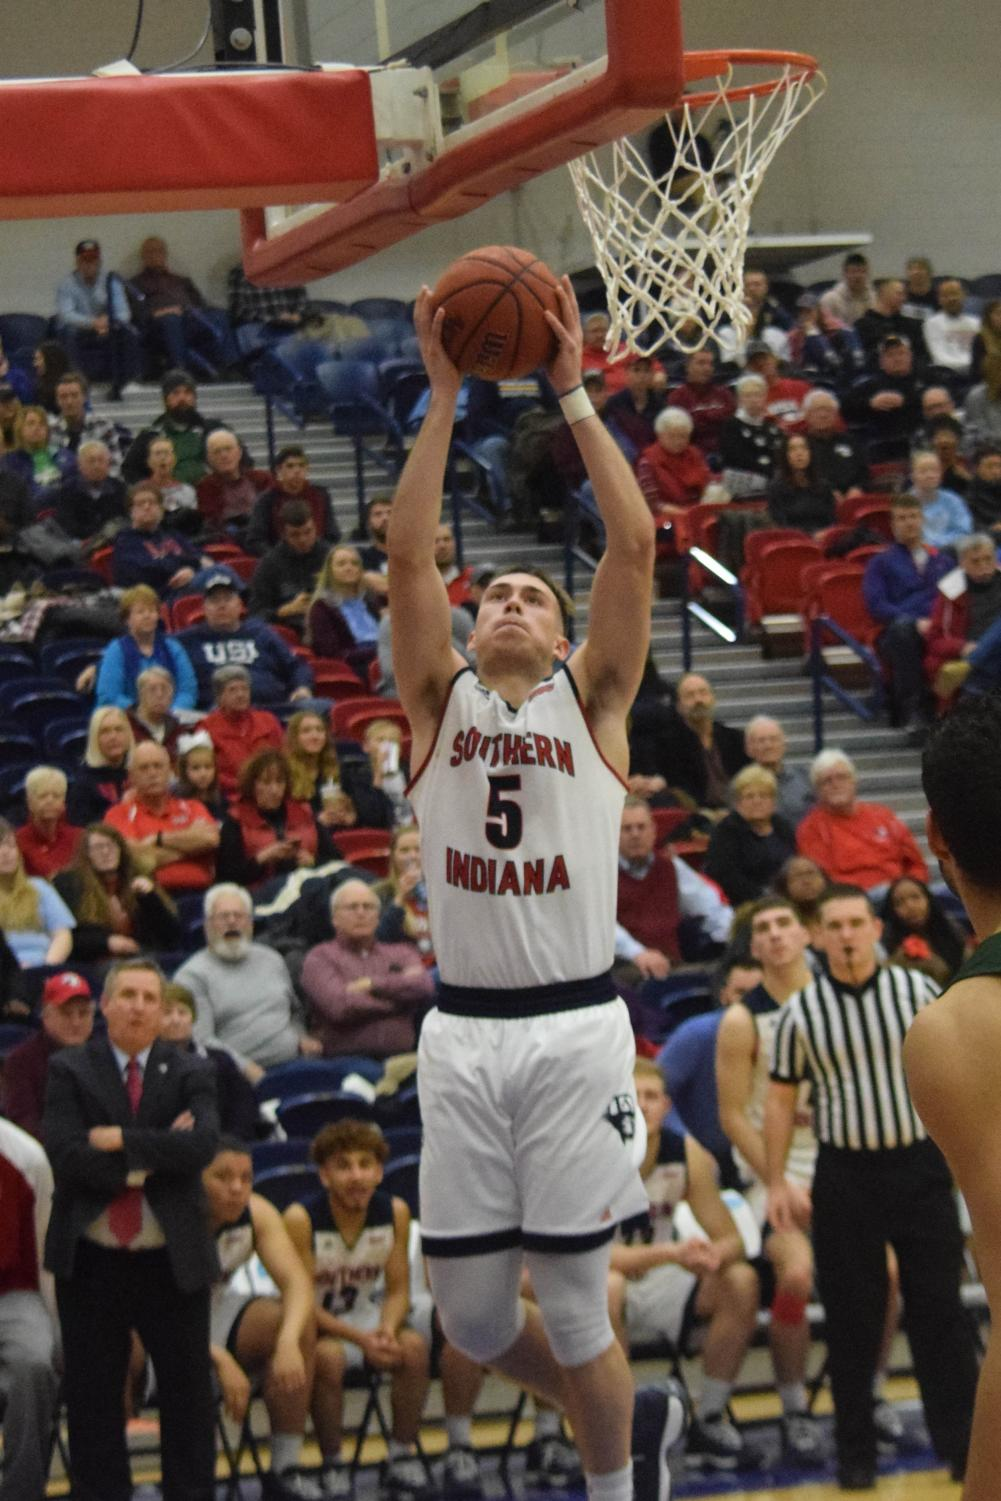 Nate+Hansen%2C+junior+guard%2C+gets+to+the+basket+for+a+layup.